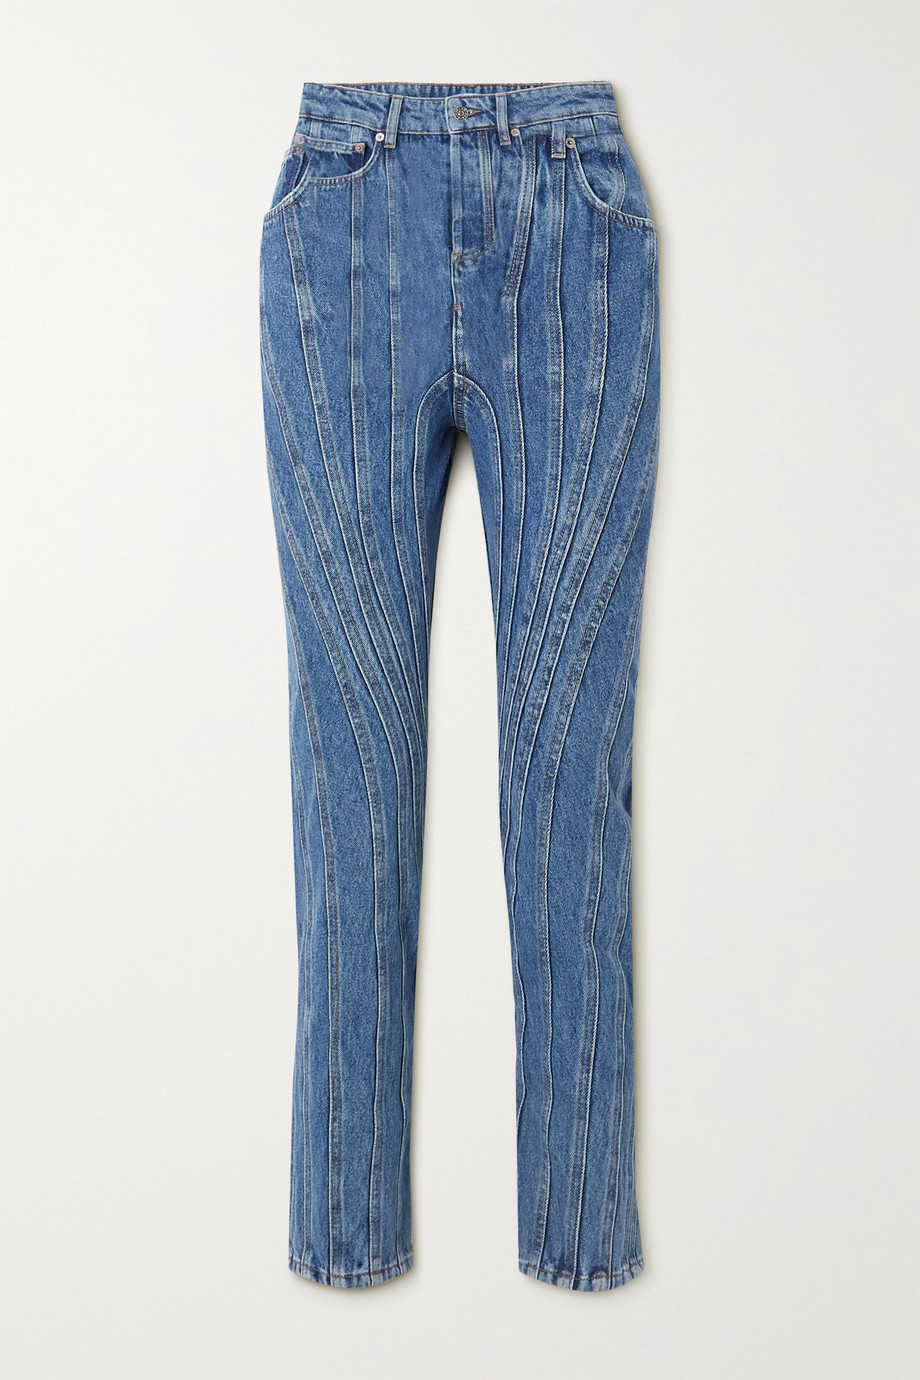 Mugler Paneled high-rise straight-leg jeans